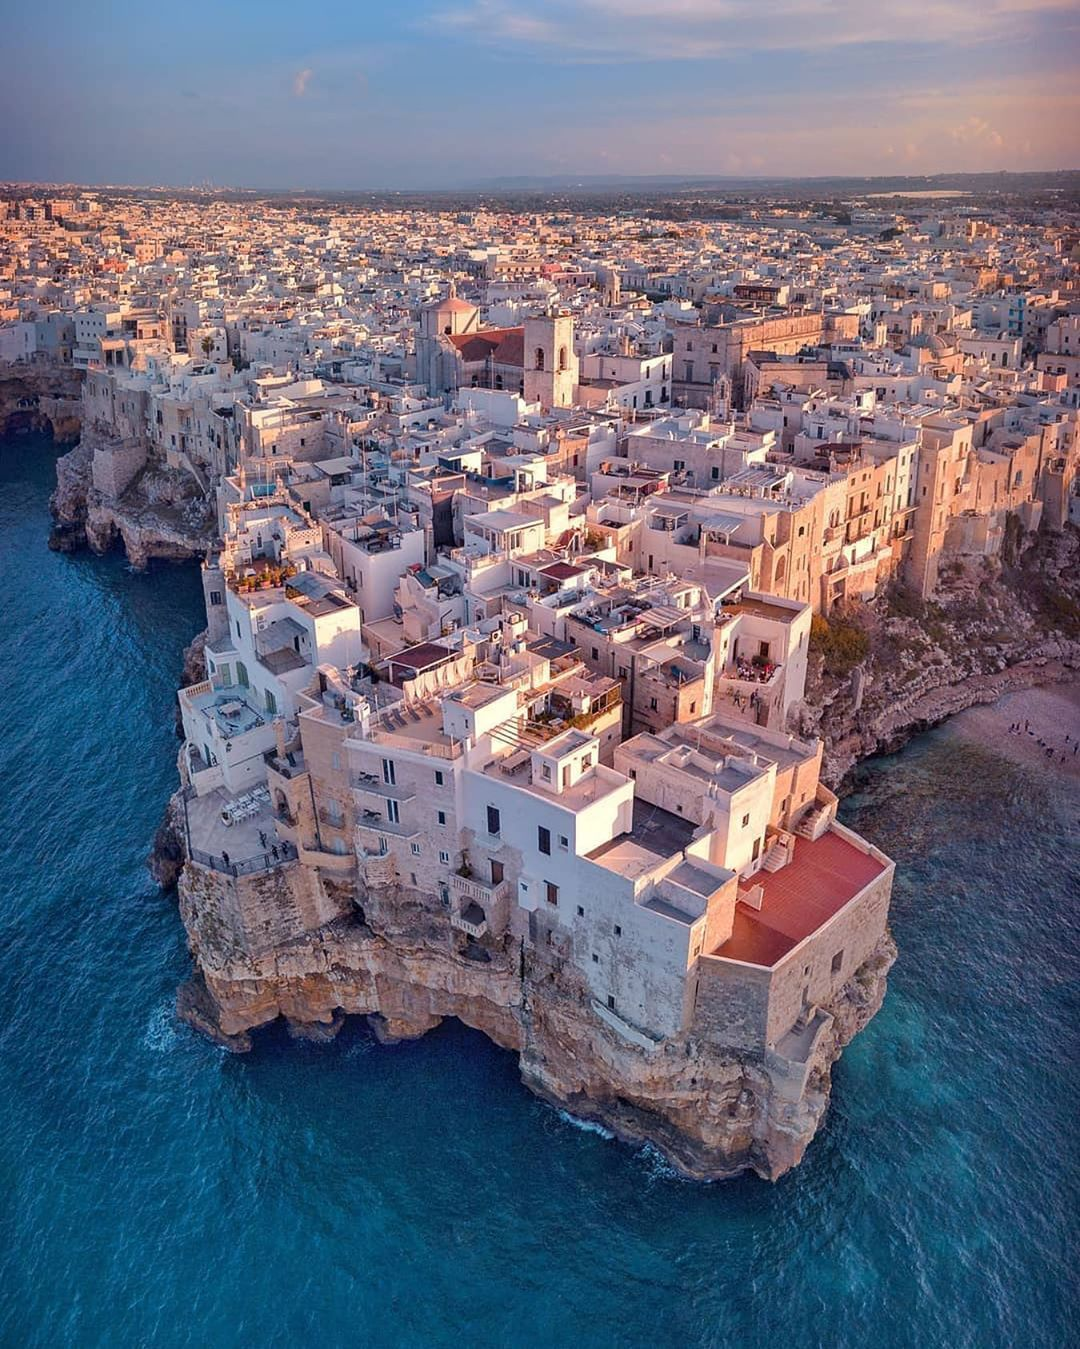 The amazing Polignano a Mare 😍 Bari, It